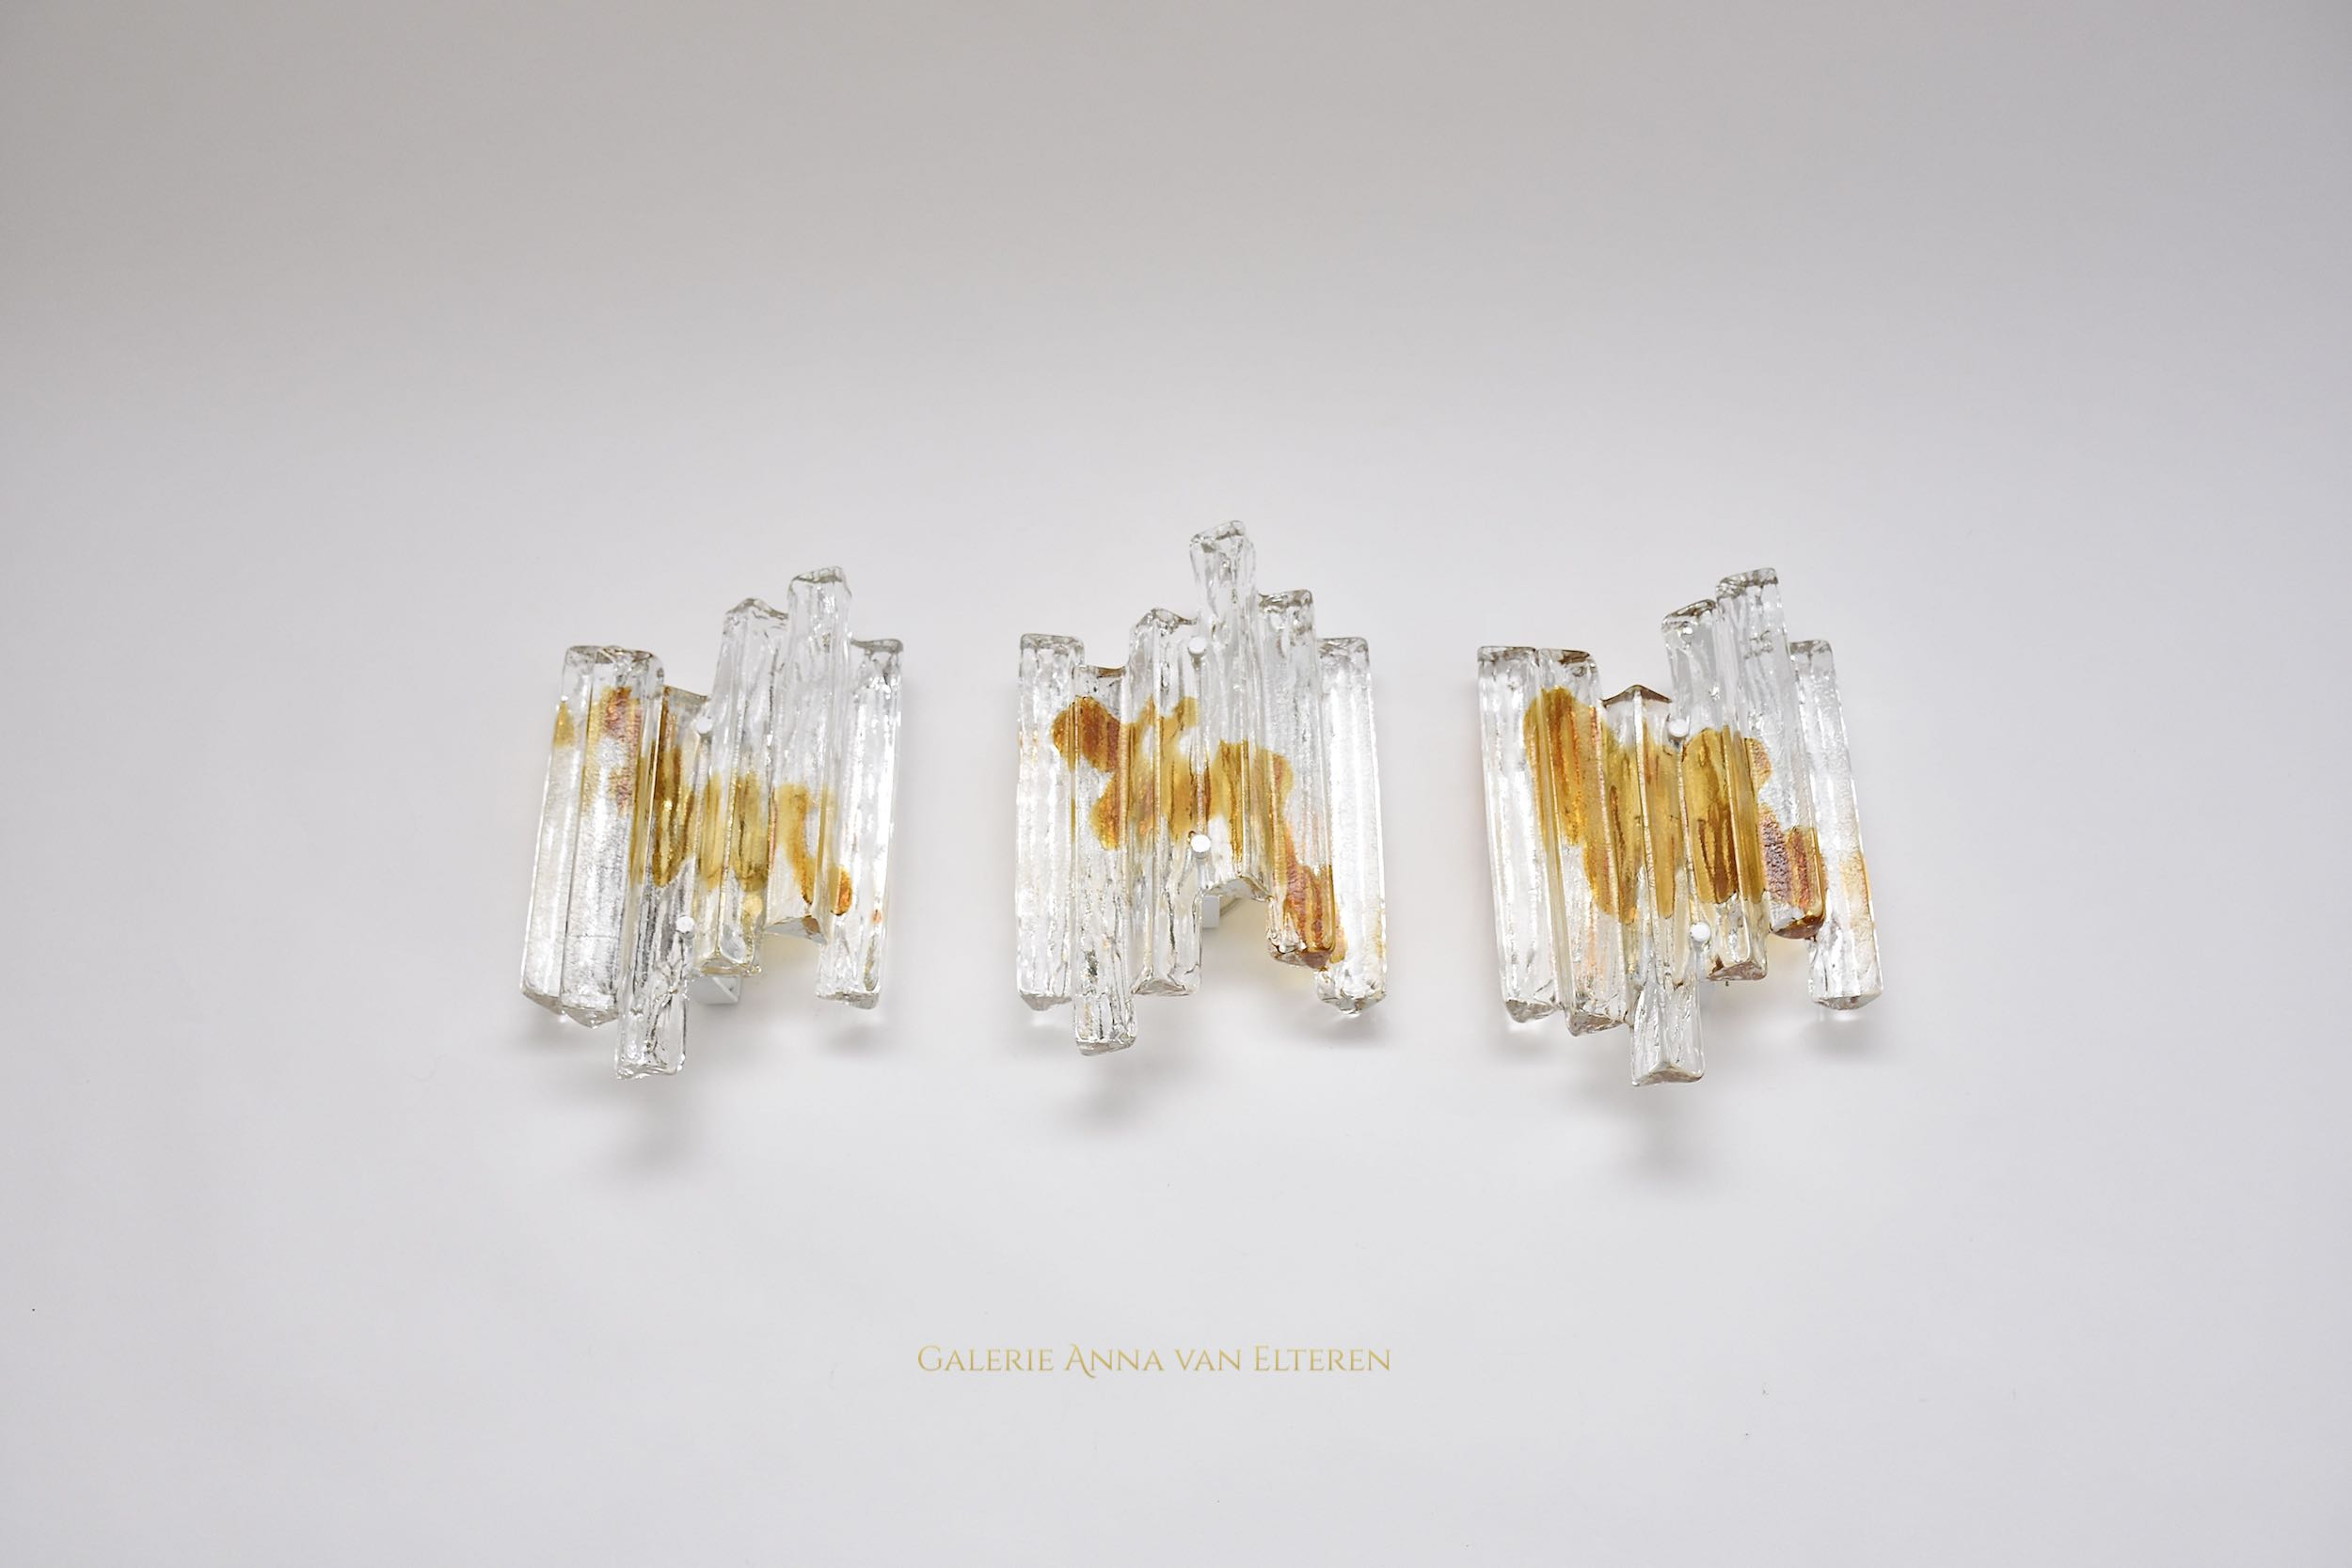 Set of 3 Murano wall lights by Salviati